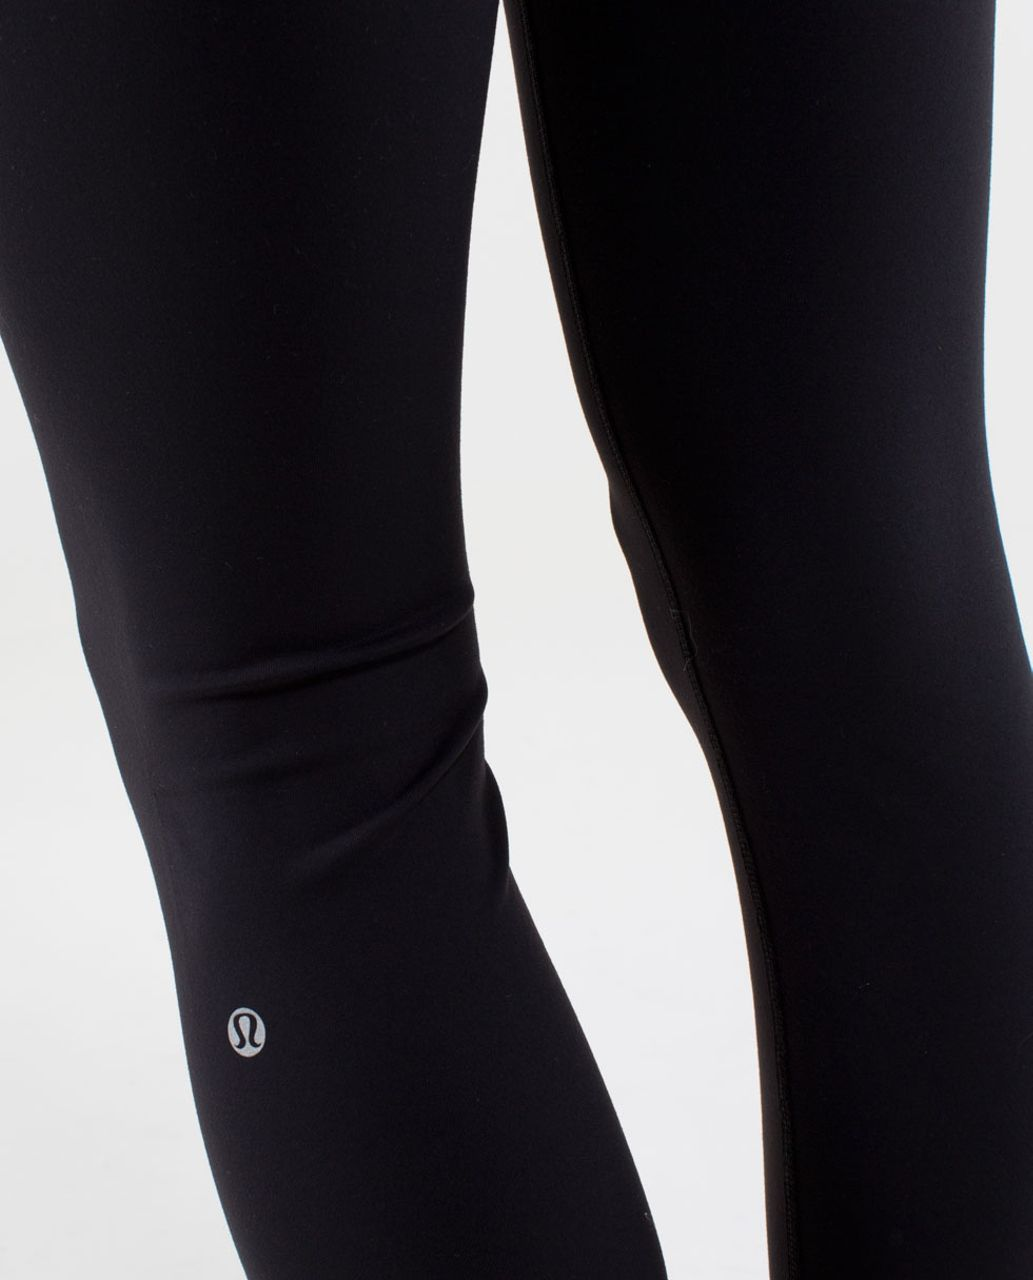 Lululemon Wunder Under Pant *Full-On Luon - Black / Quilt Winter 13-10